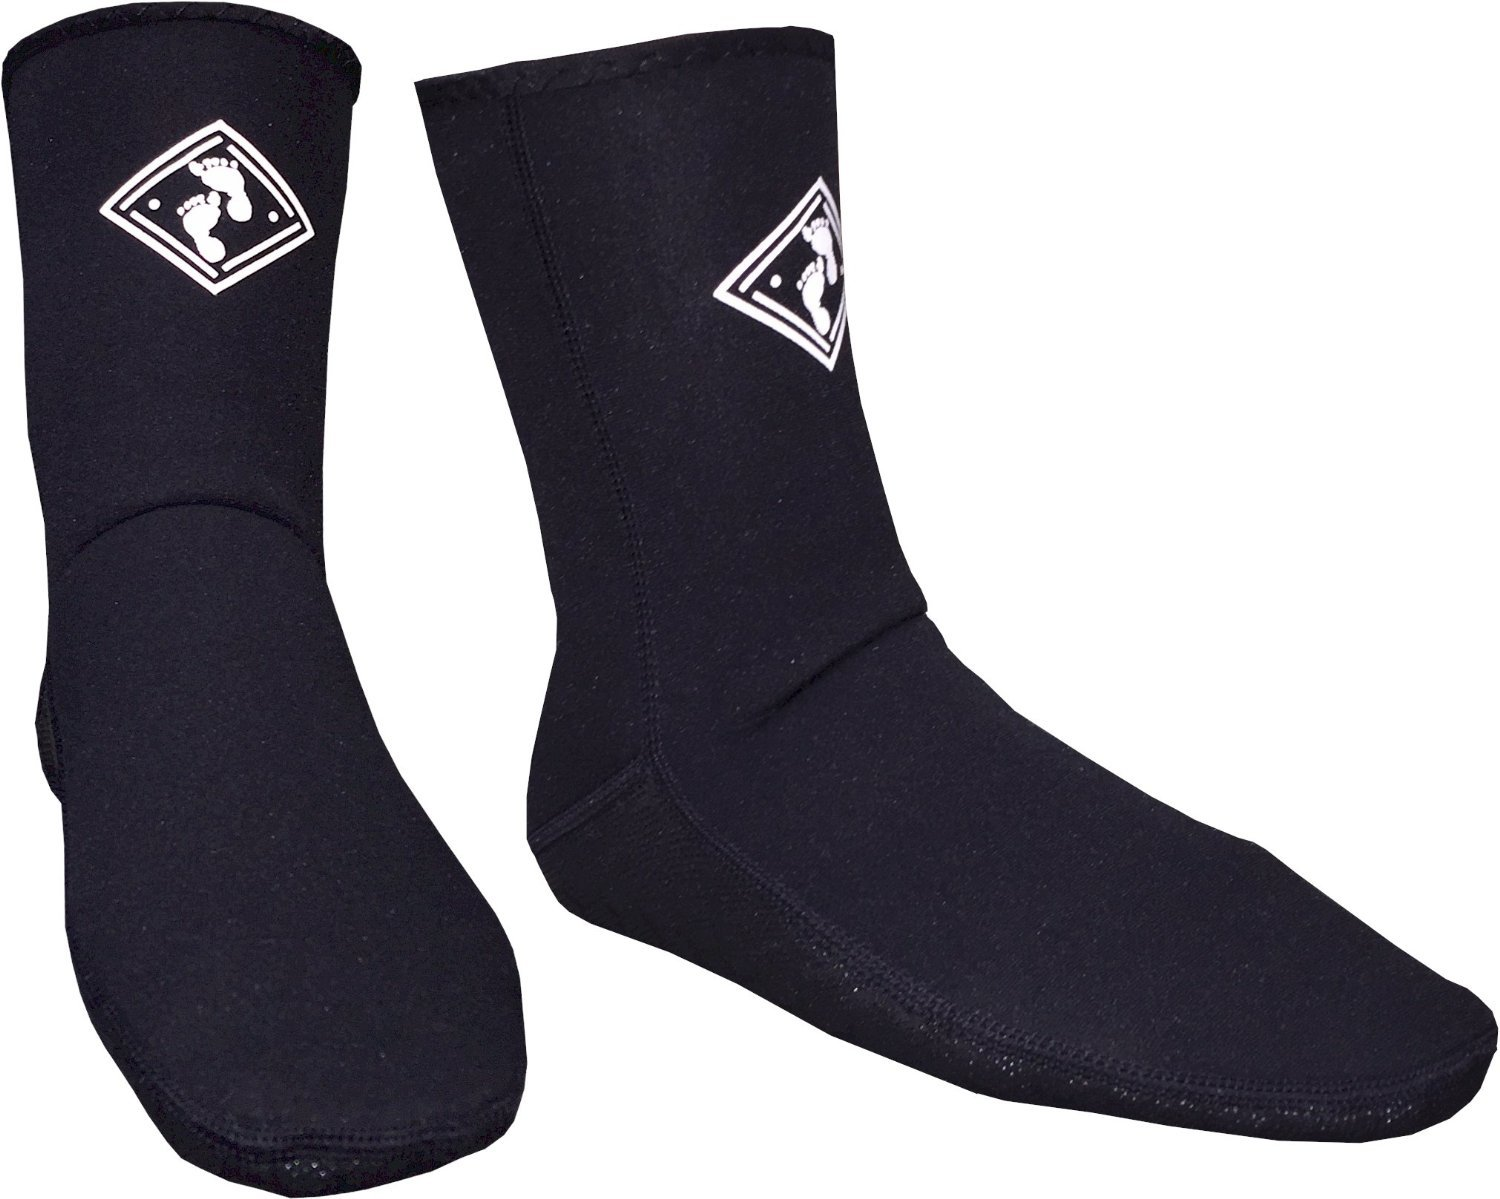 6e5bb55660 Mikes Diving NEOPRENE wetsuit SOCKS For use with boots dive surf sailing  etc  Amazon.co.uk  Sports   Outdoors